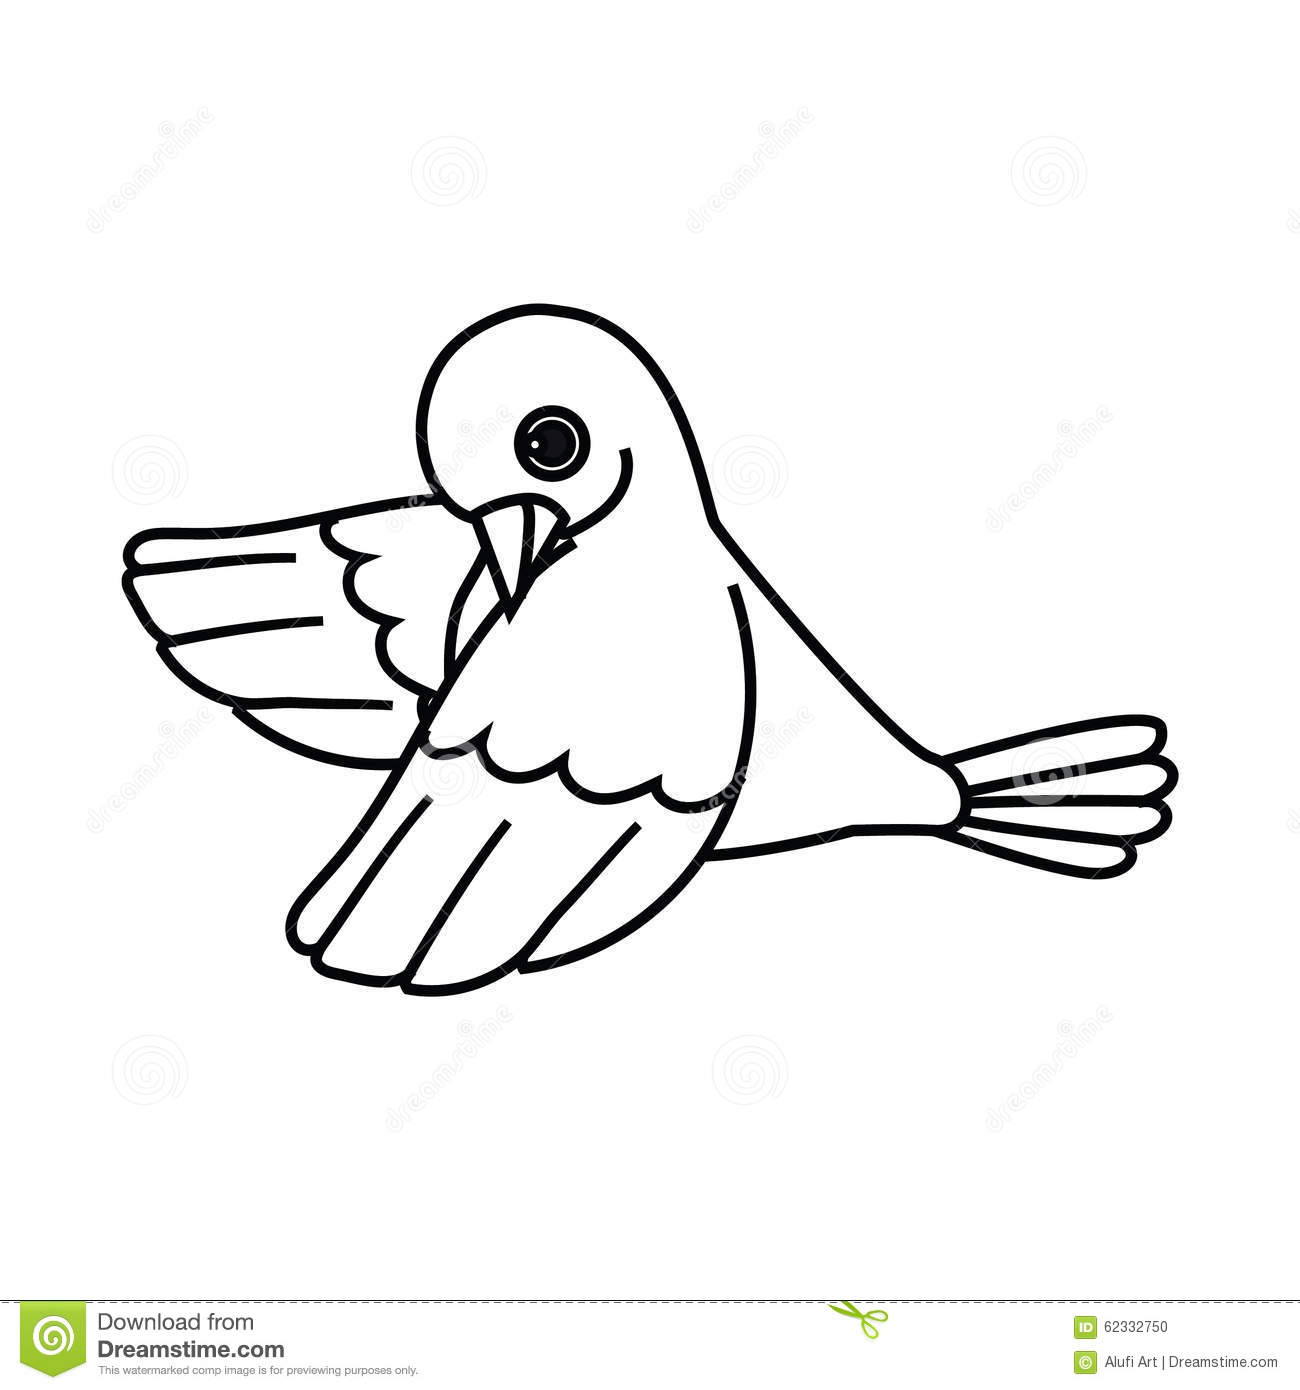 bird outline coloring page - flying bird outline cast down stock vector image 62332750